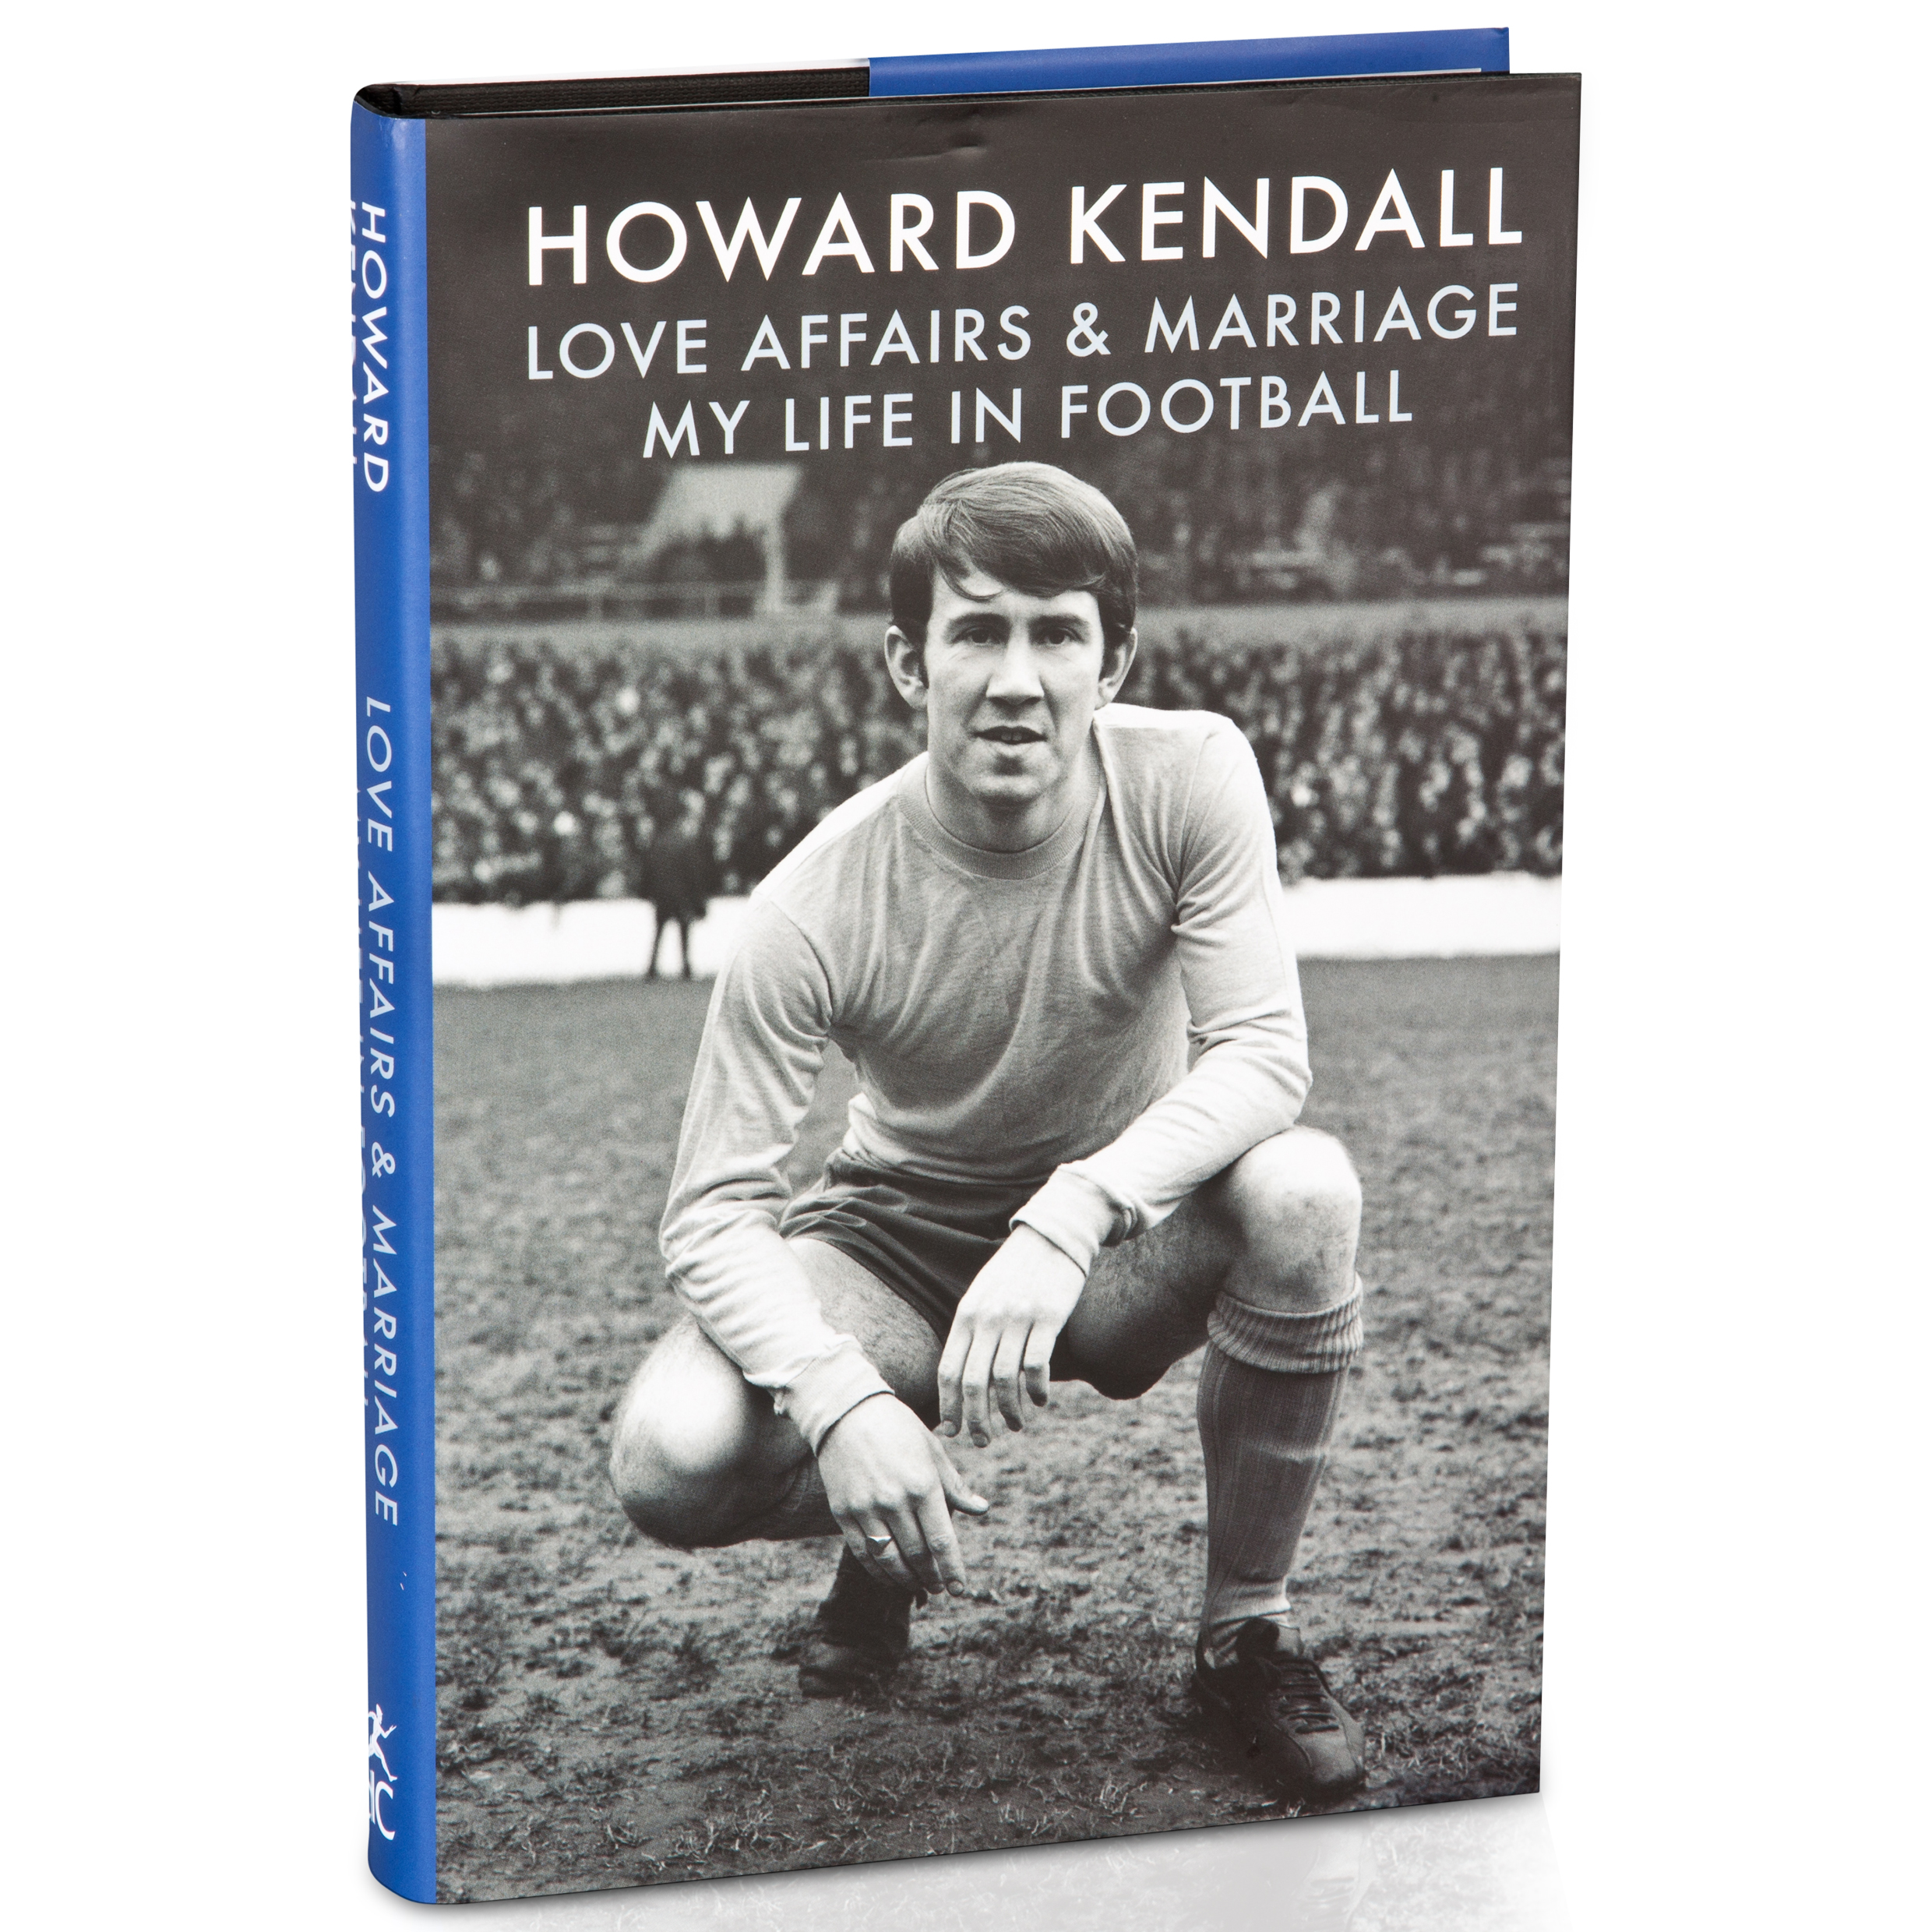 Everton Love Affairs and Marriage: My Life in Football by Howard Kendall (autobiography)